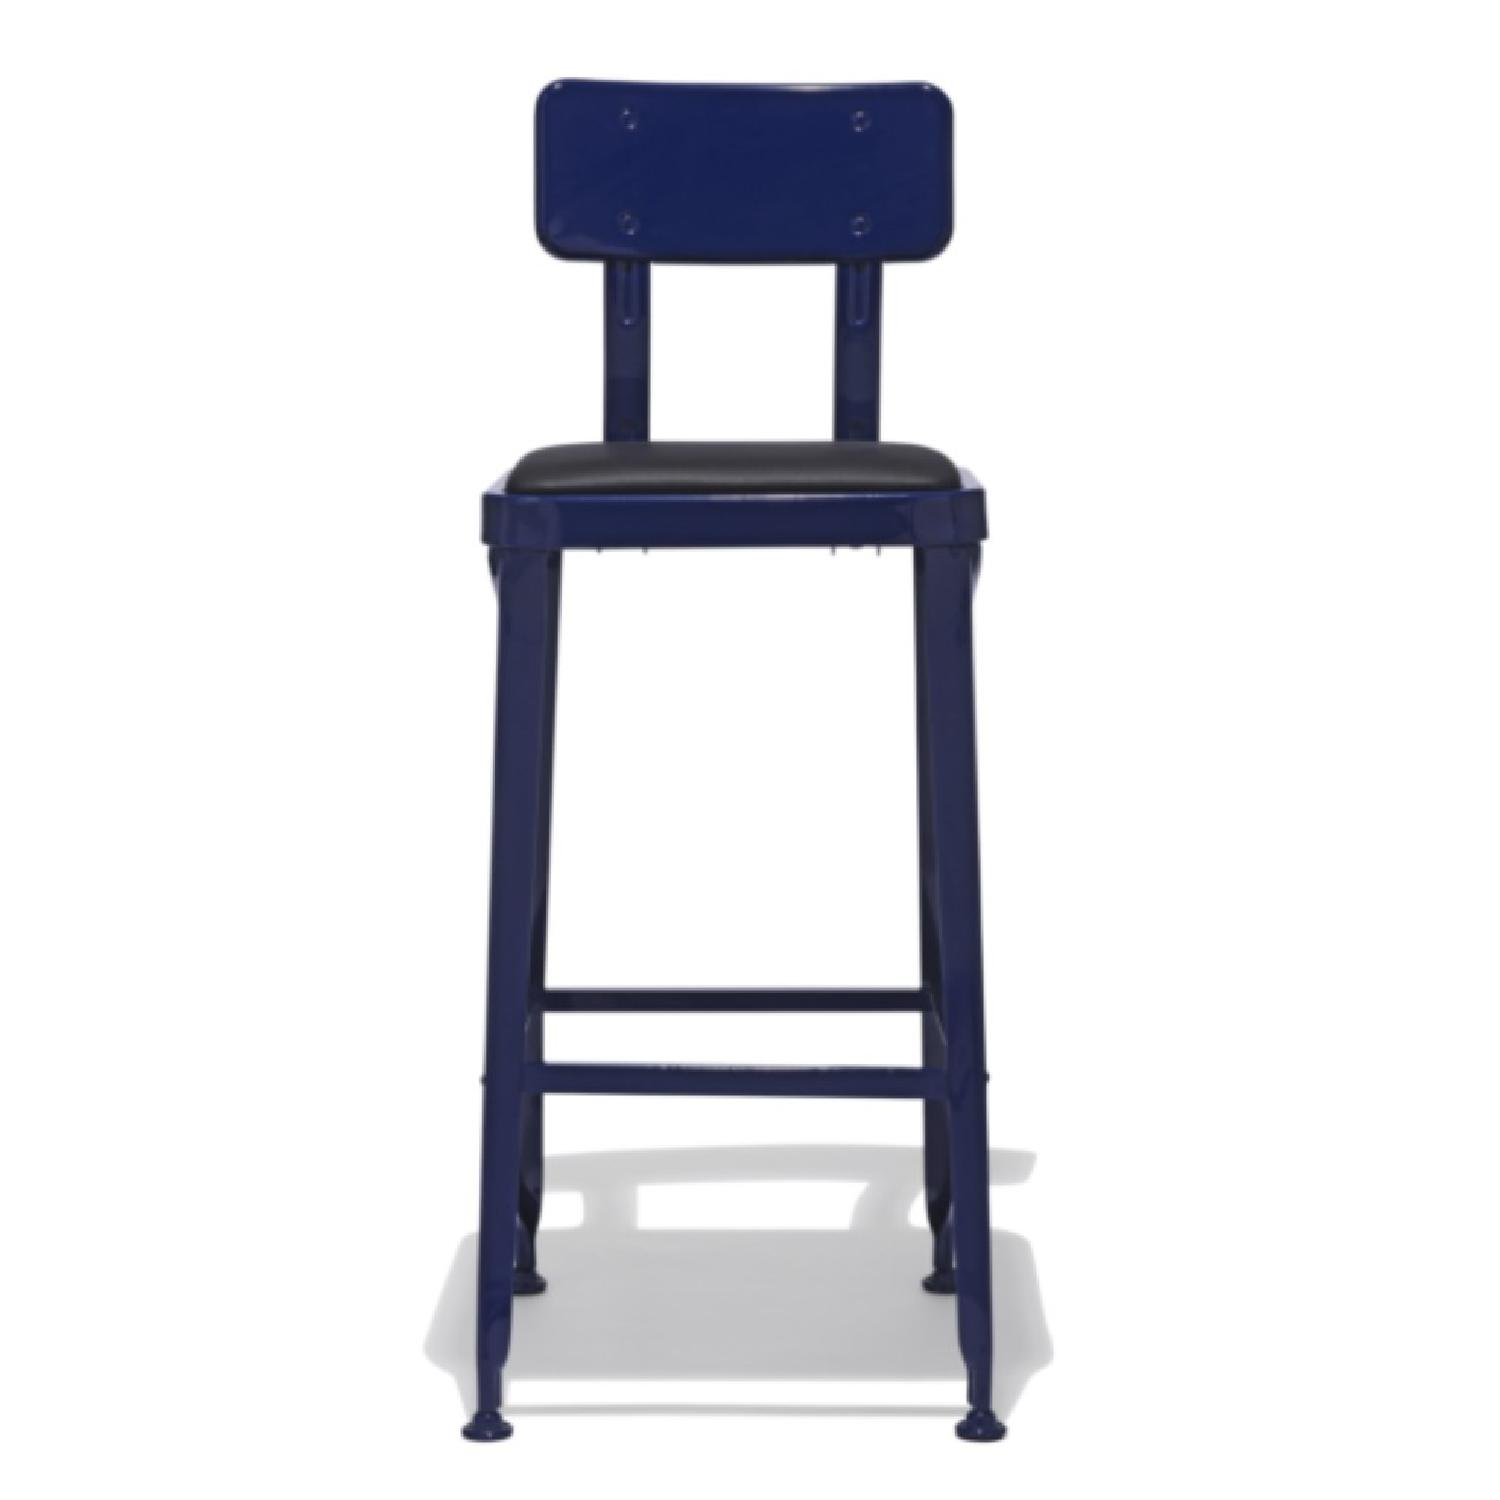 Industry West Octane Bar/Counter Stools